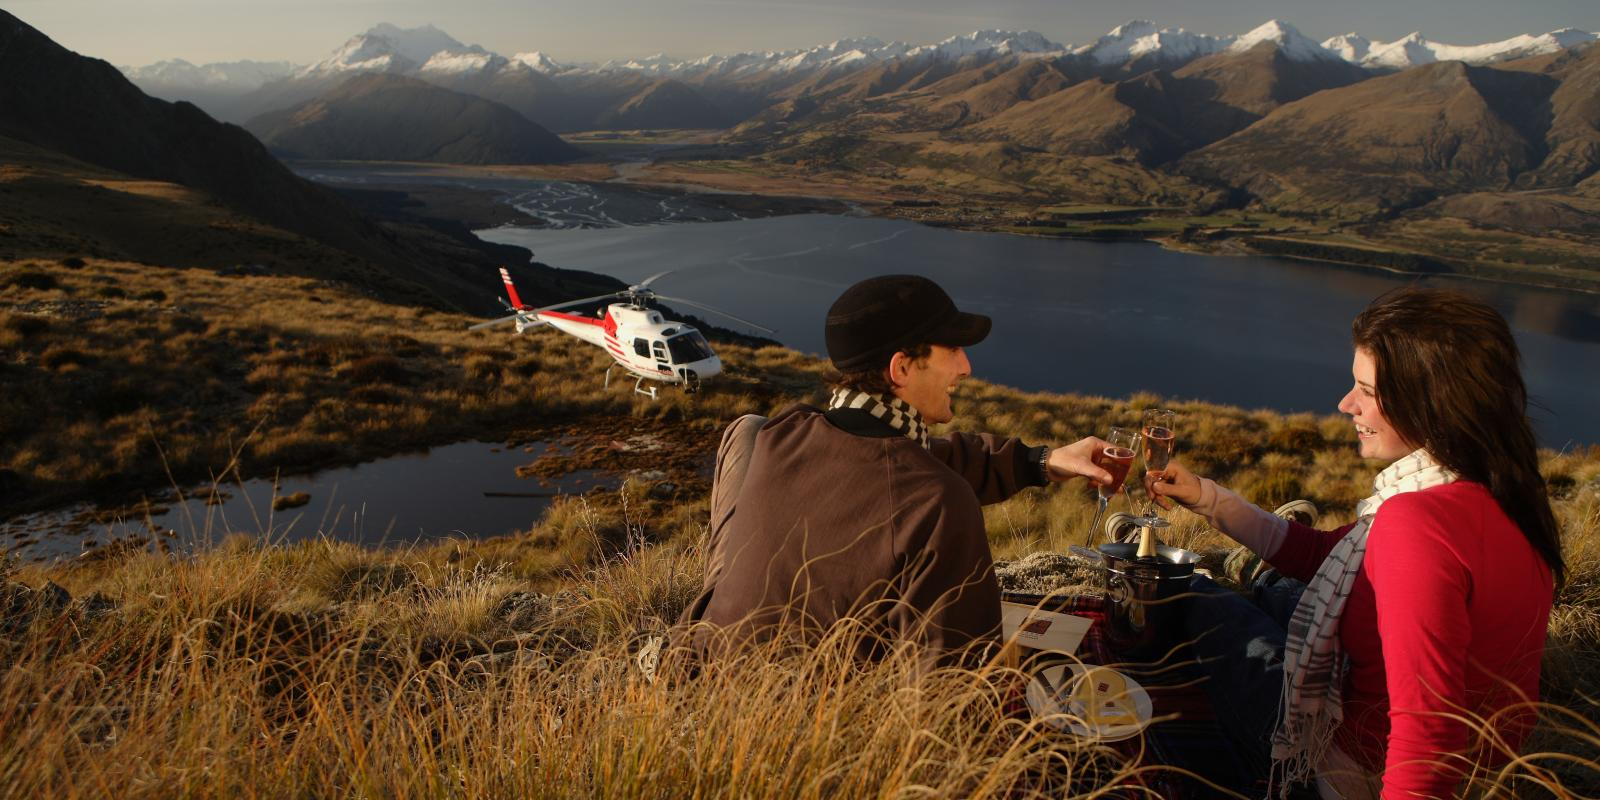 Honeymooning in Queenstown helicopter picnic